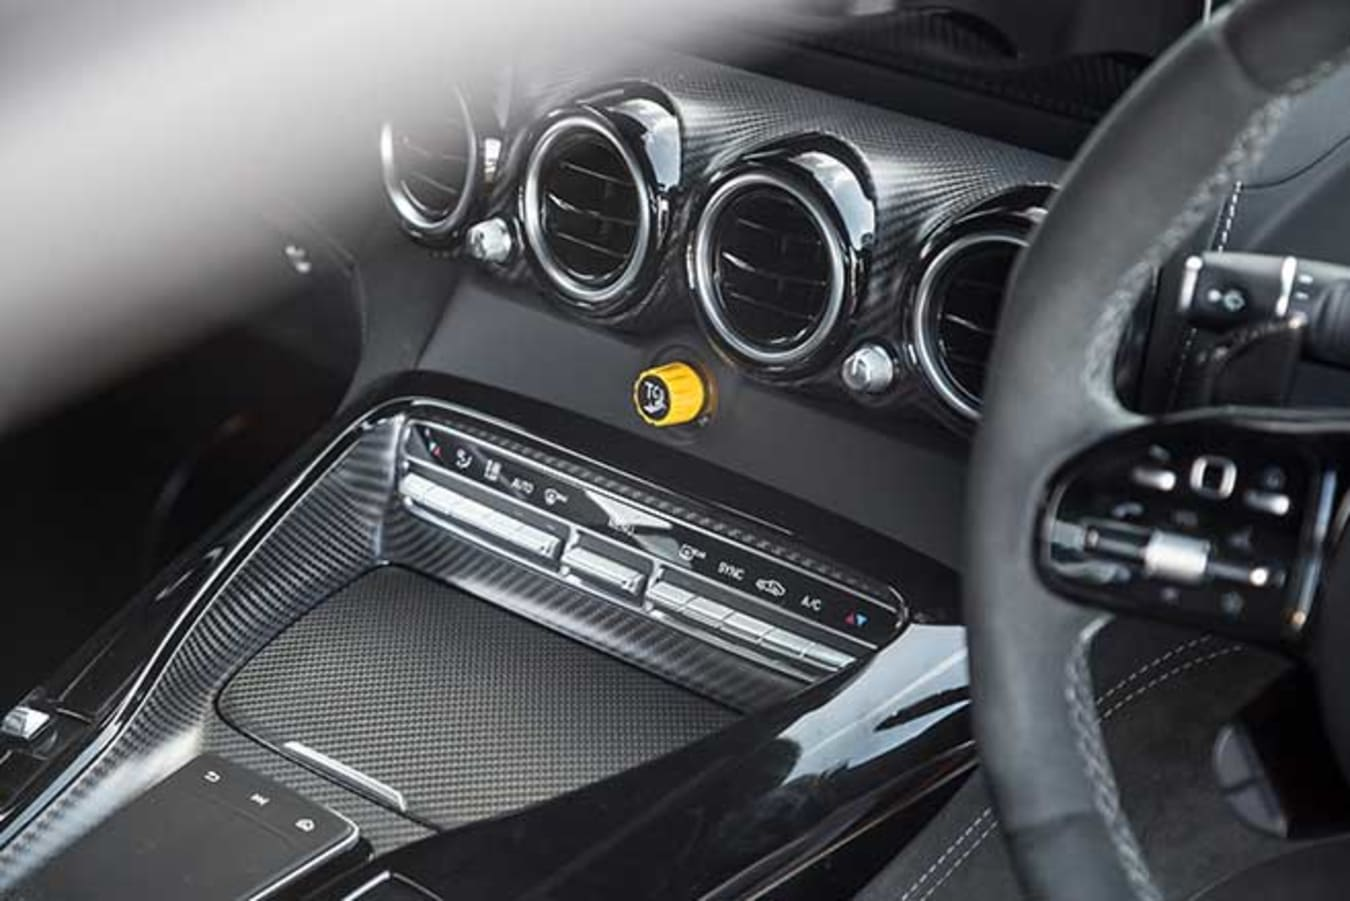 Mercedes-AMG's 10-stage traction control system.